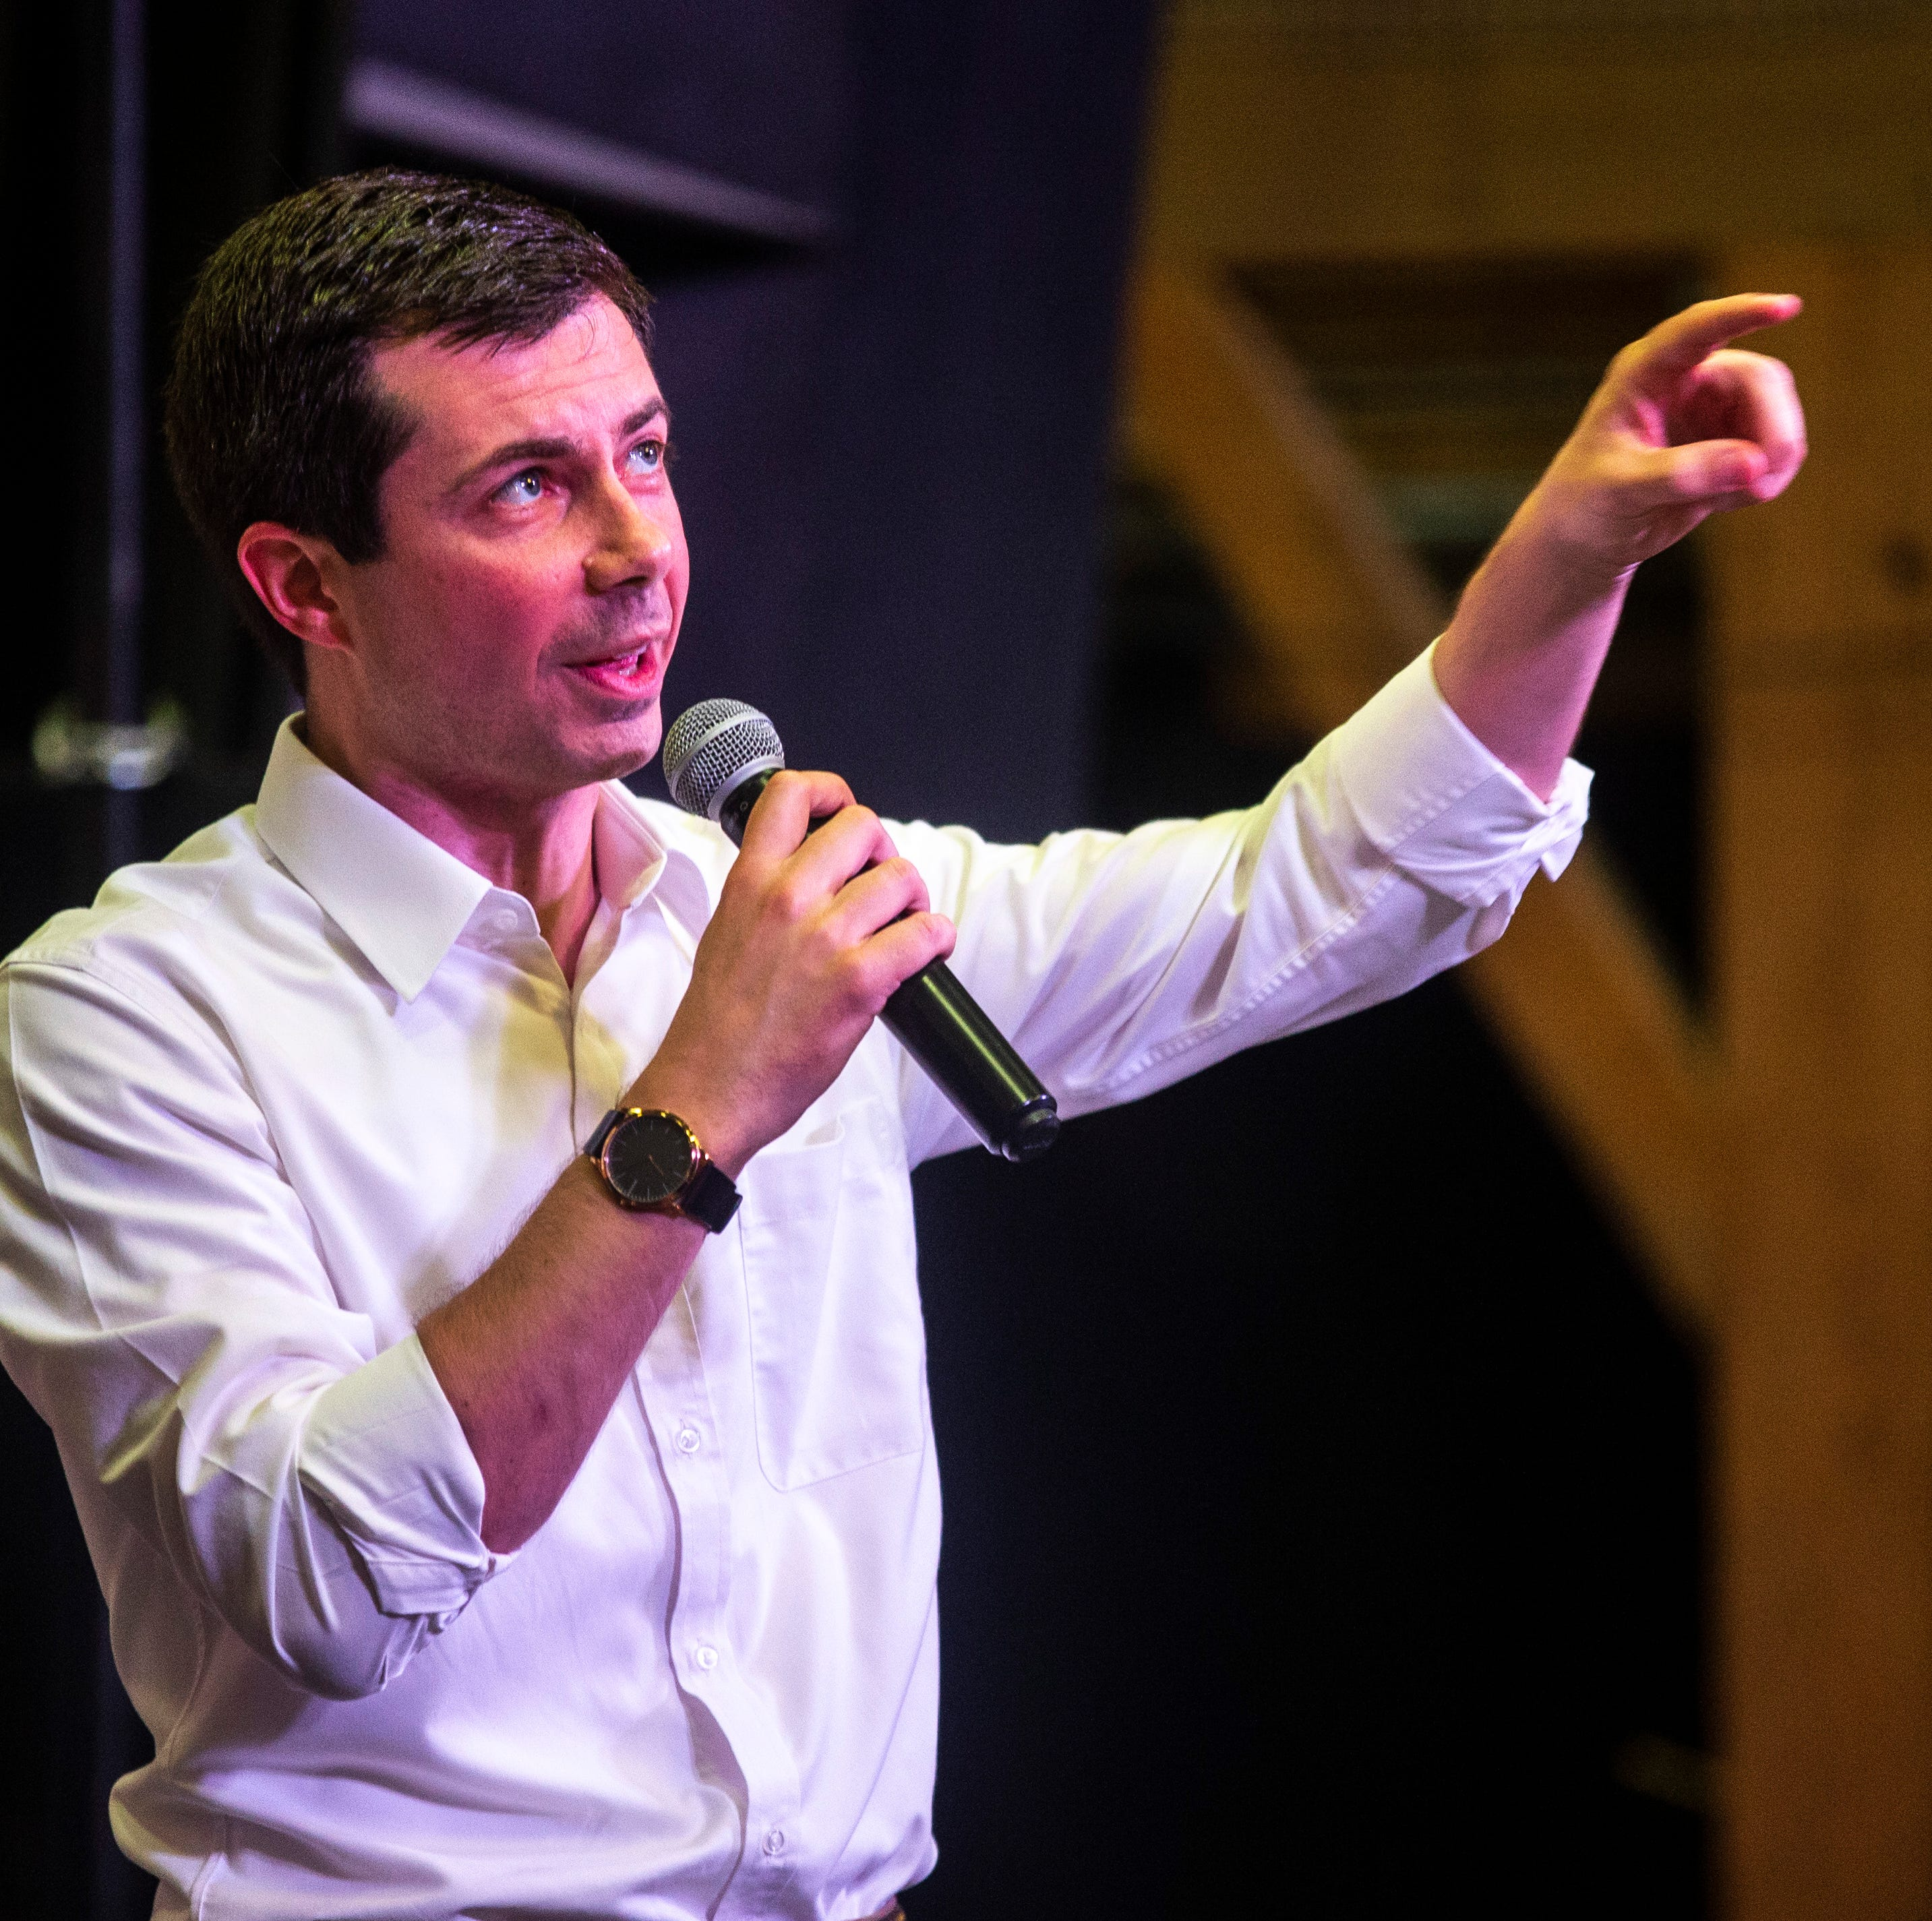 In Iowa, Pete Buttigieg comforts 11-year-old being bullied: 'You have nothing to be ashamed of'